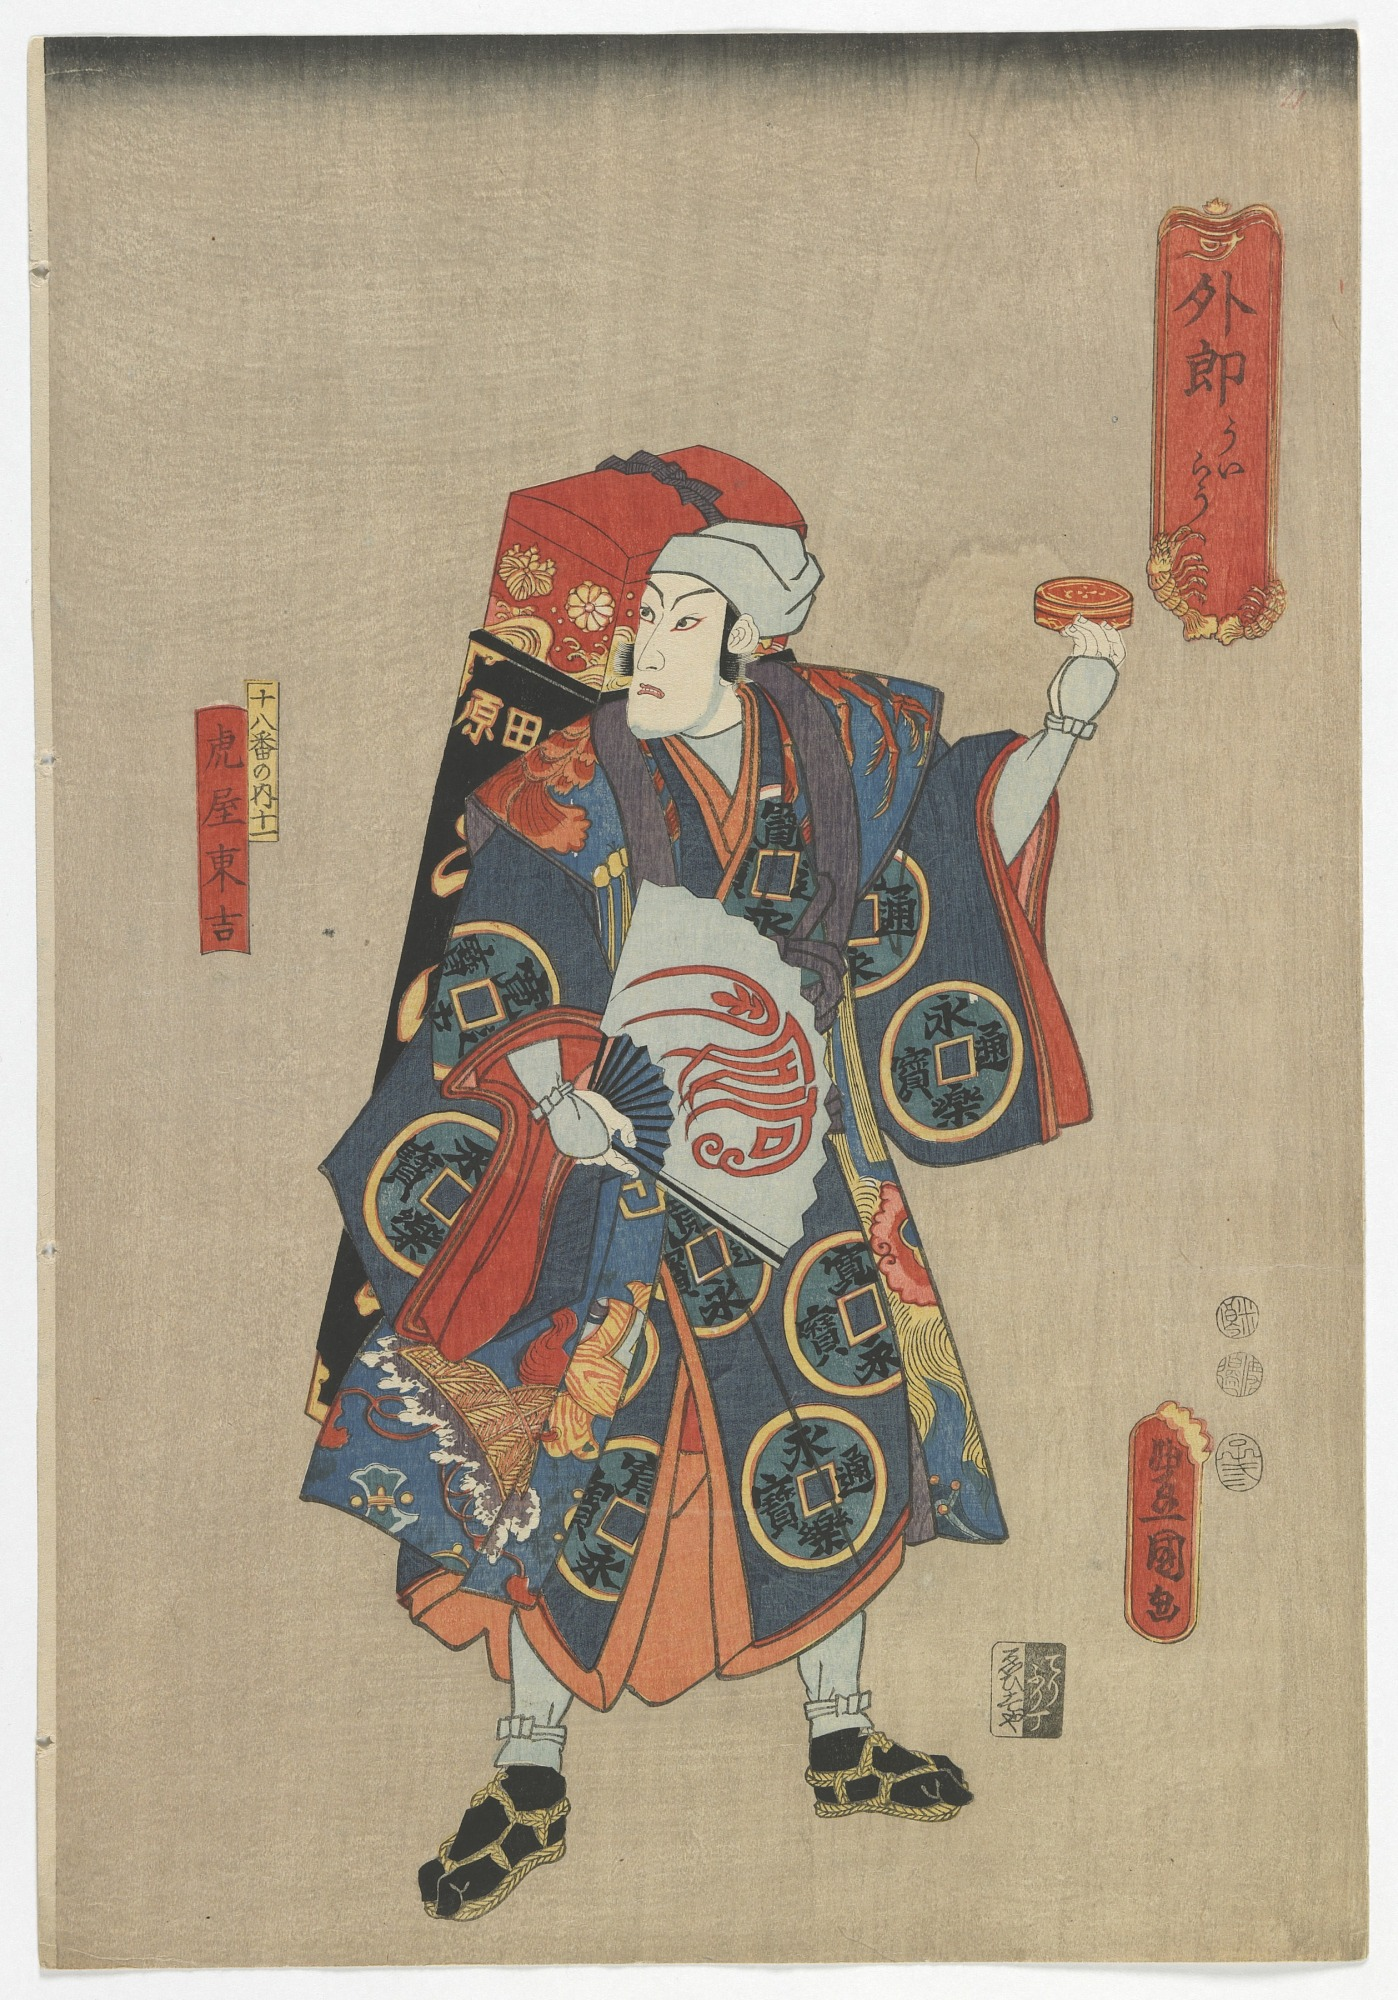 The Eighteen Plays of the Ichikawa Clan: Actor Ichikawa Danjuro VIII as the Medicine Vendor Toraya Tokichi